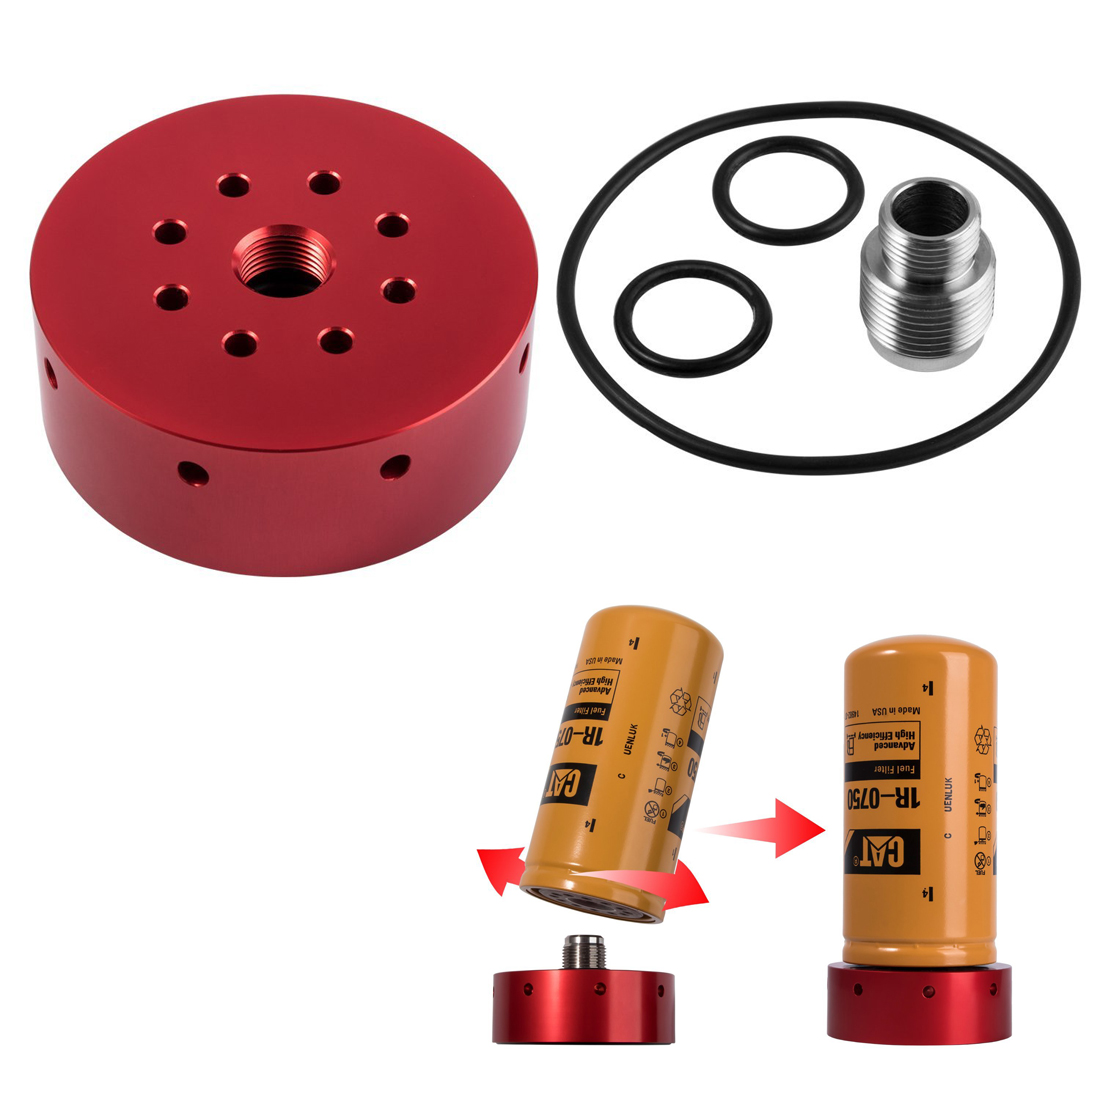 Lly Duramax Fuel Filter Access Wiring Library New Adapter Kit For Chevy Gmc Diesel Lb7 Lbz Lmm Lml